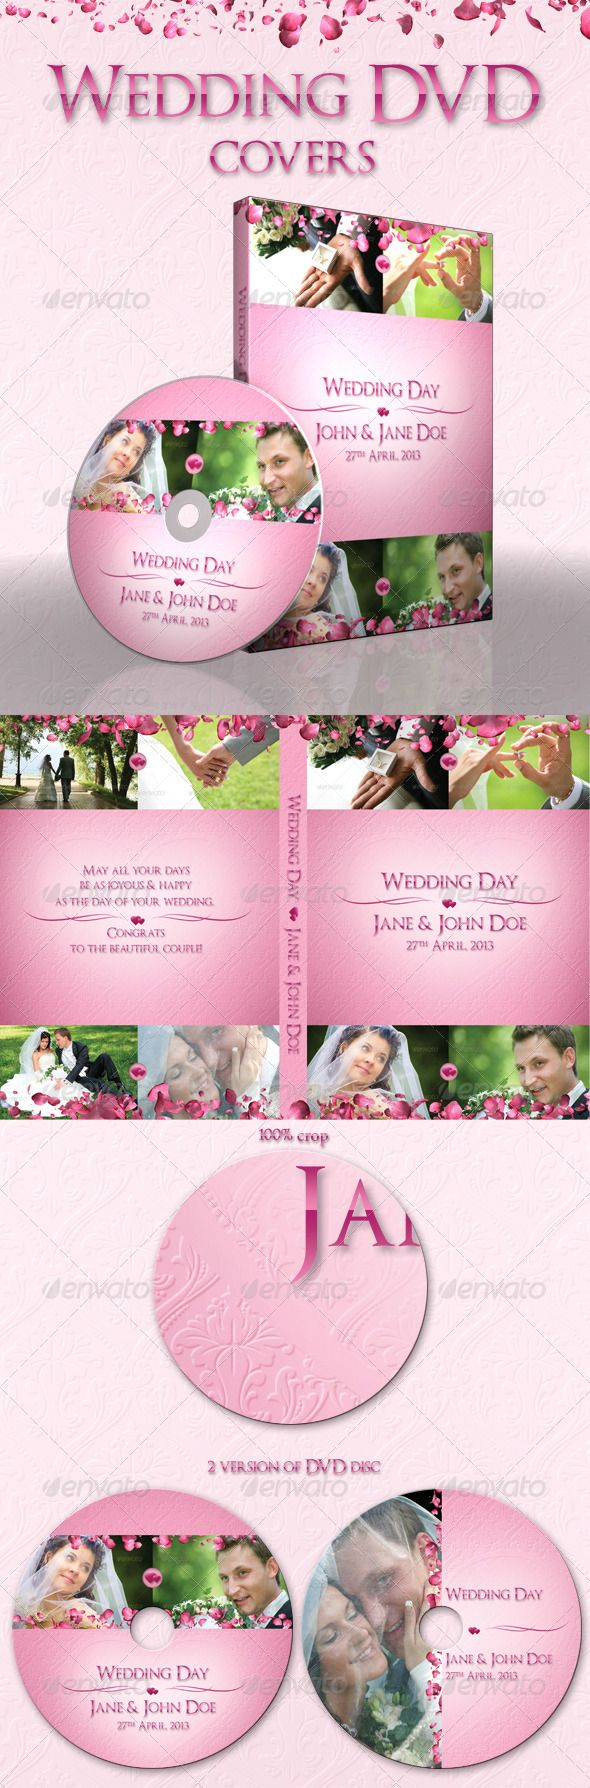 135 best cd dvd templates images on pinterest cd cover wedding dvd covers pronofoot35fo Choice Image